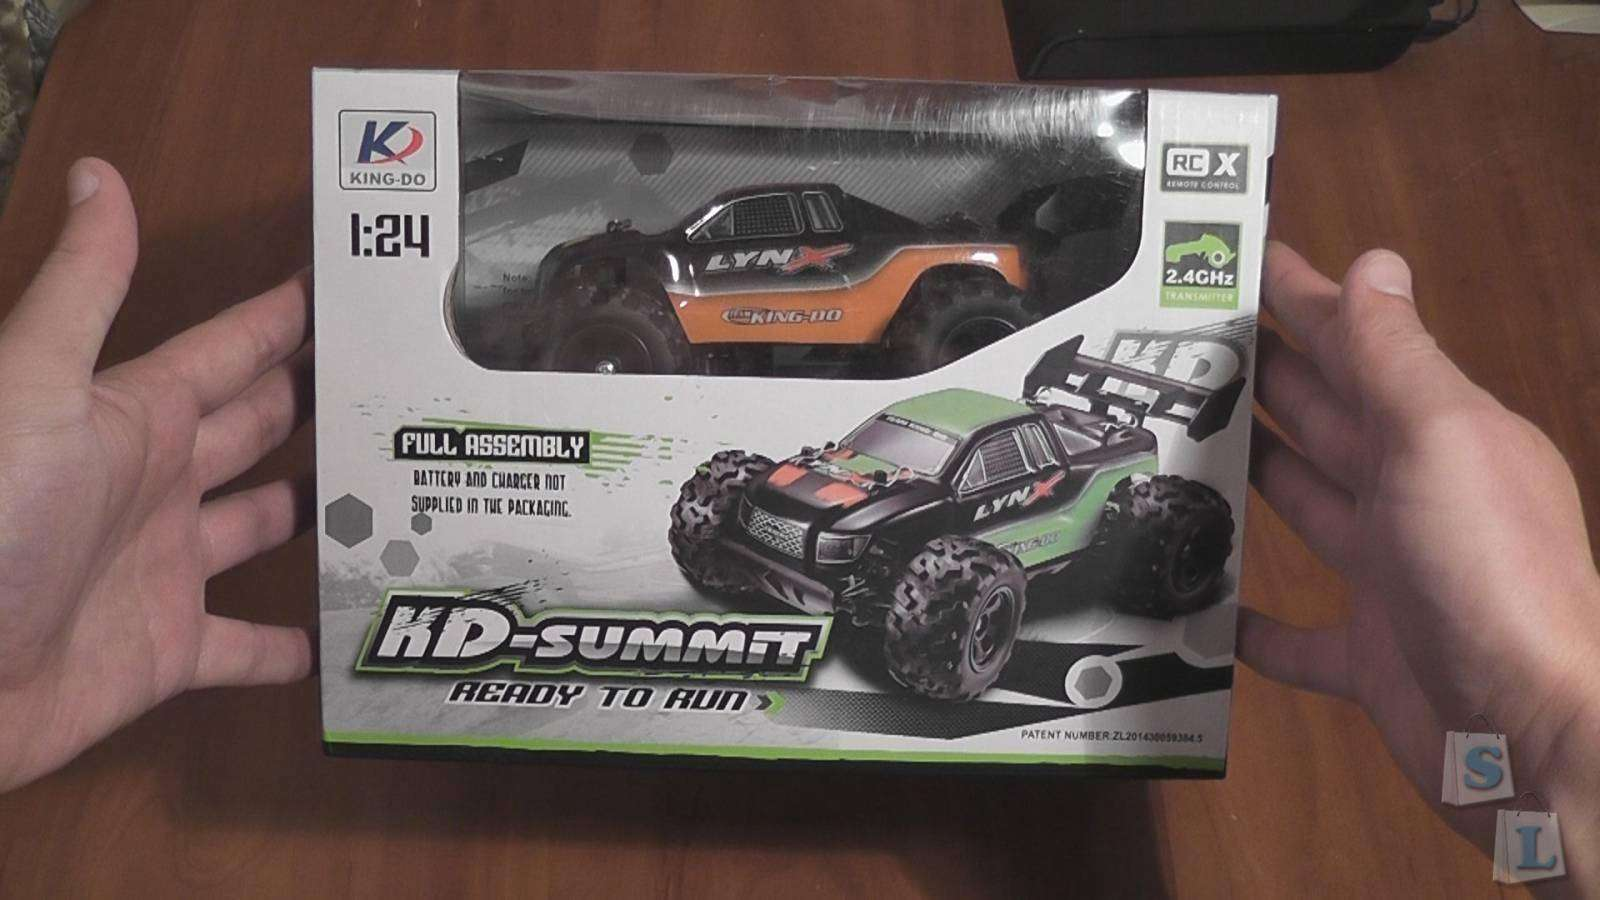 GearBest: KD-summit S600 2.4GHz, 2Ch, 4WD, Mini Truggy car (1:24) (RTR)